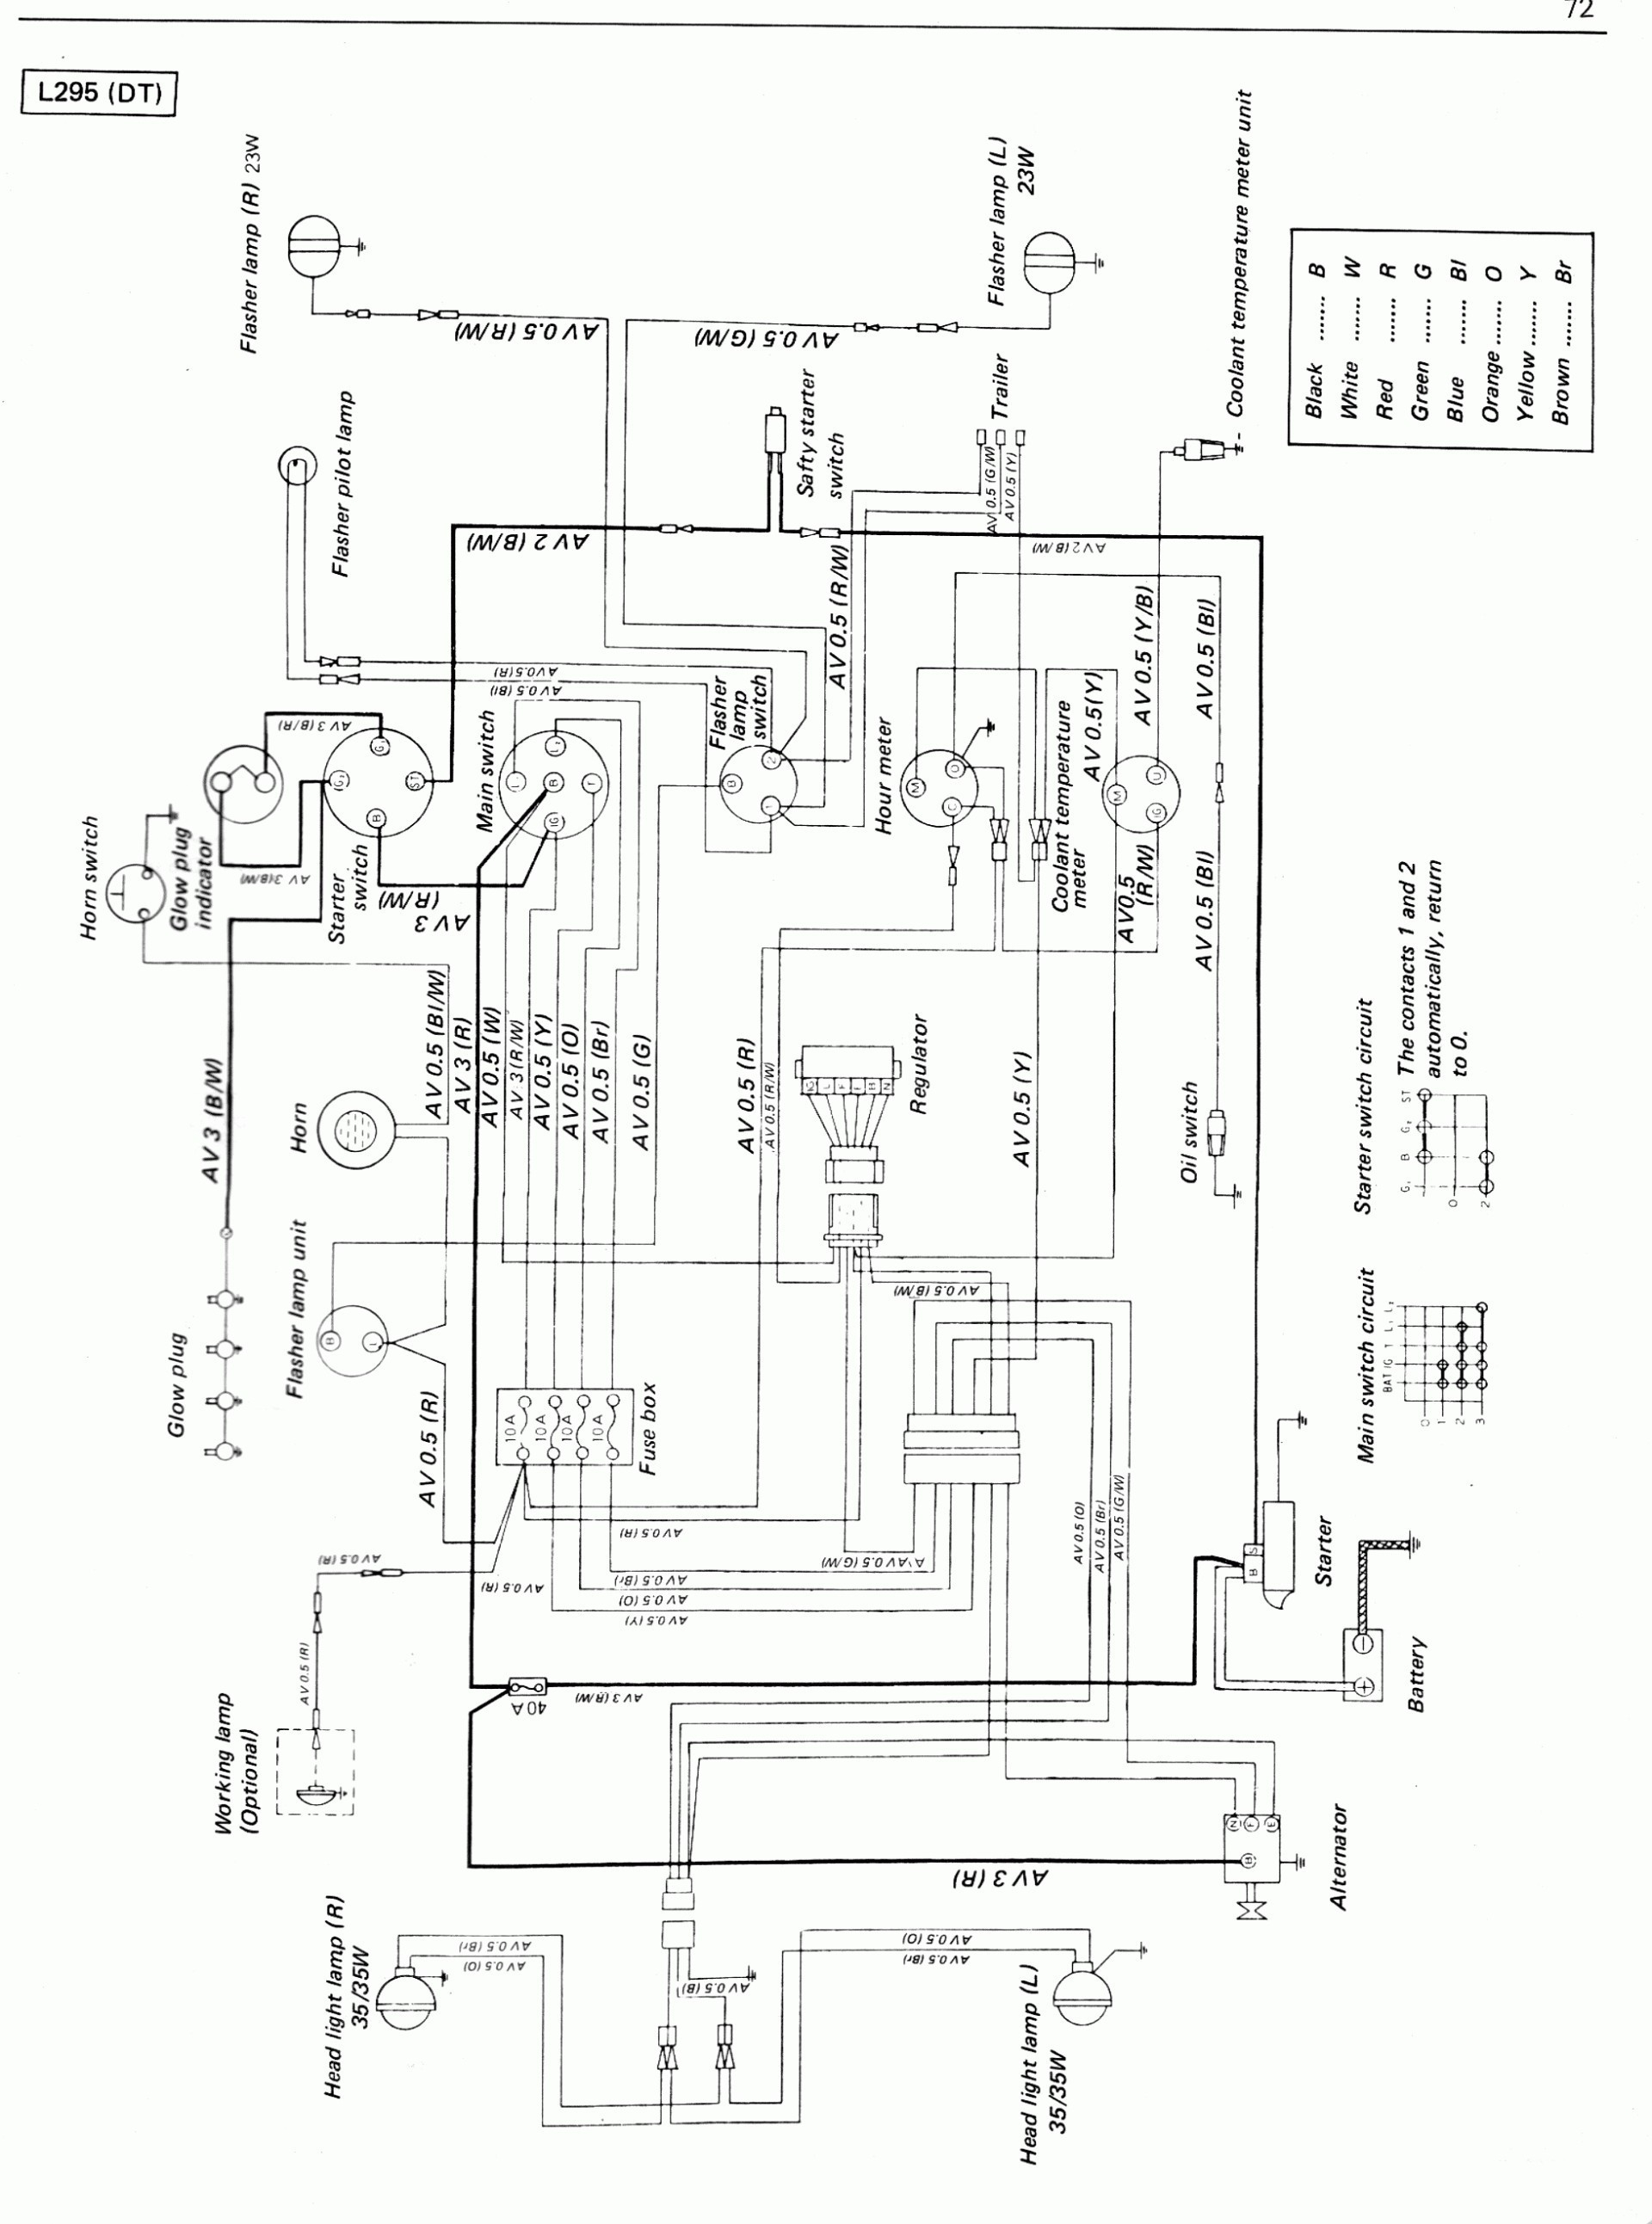 kubota ignition switch wiring diagram Download-Tractor Generator Wiring Diagram New Kubota Generator Wiring Diagram New Kubota Ignition Switch Wiring 7-d